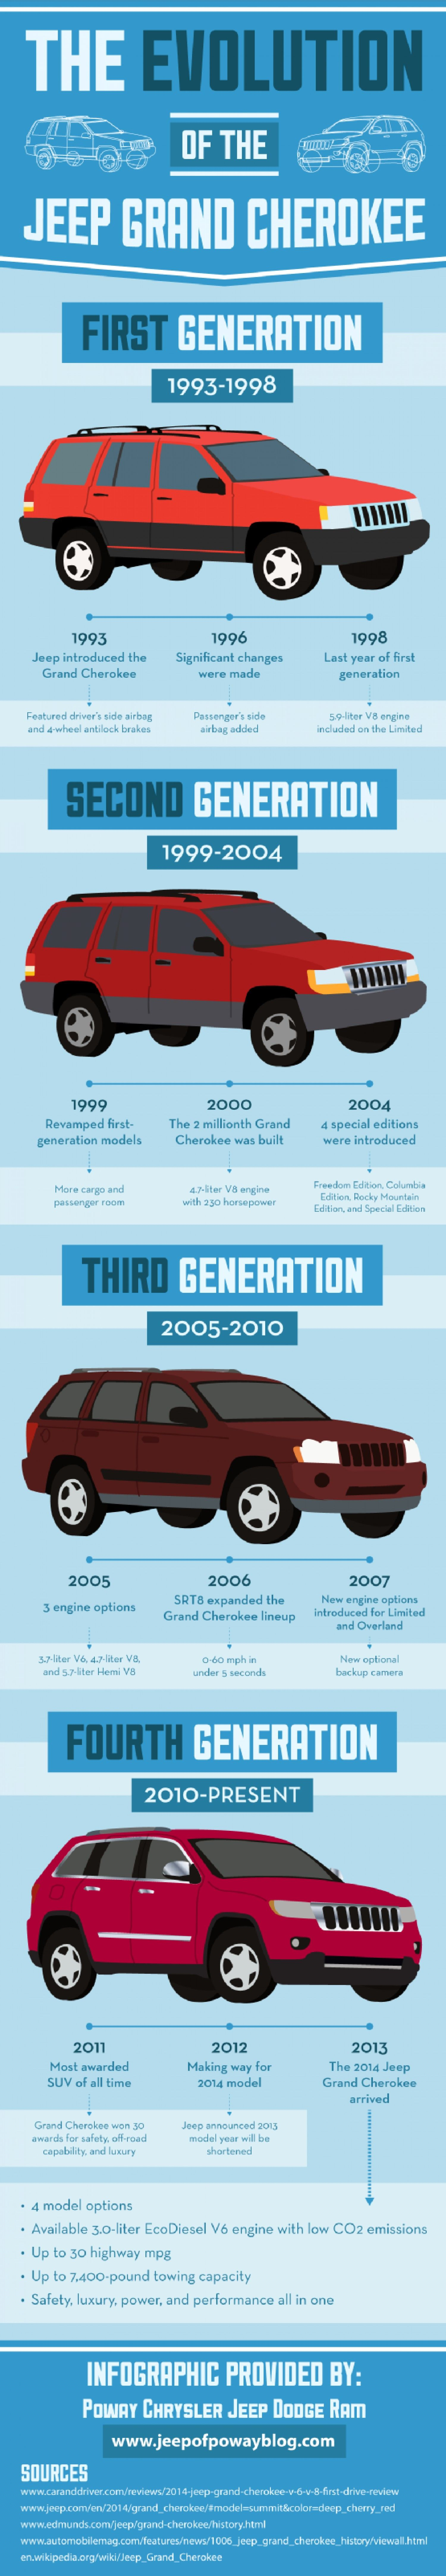 Hey San Diego Check Out The Evolution Of The Jeep Grand Cherokee Infographic Jeep Grand Cherokee Jeep Grand Jeep Grand Cherokee Zj